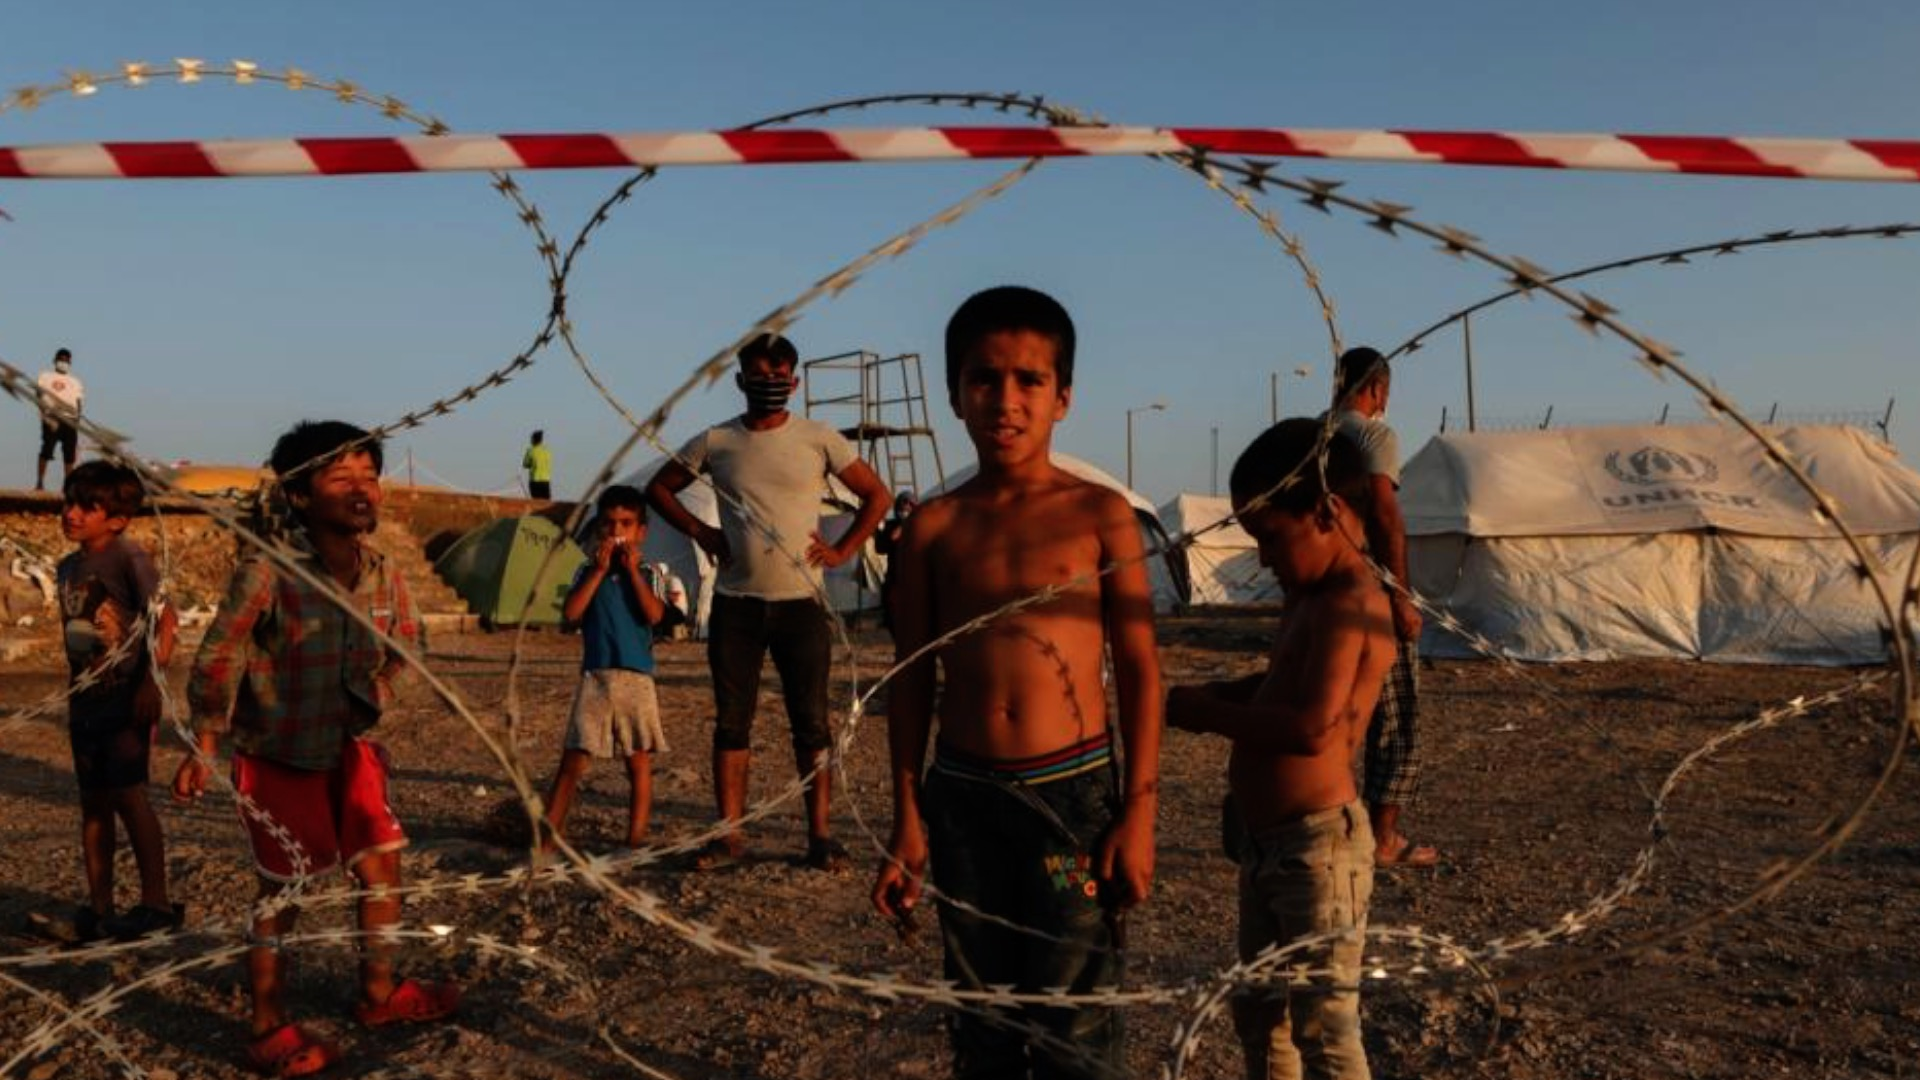 The tragic Story of the Pikpa Refugee Camp & how the Refugee Crisis affects us all